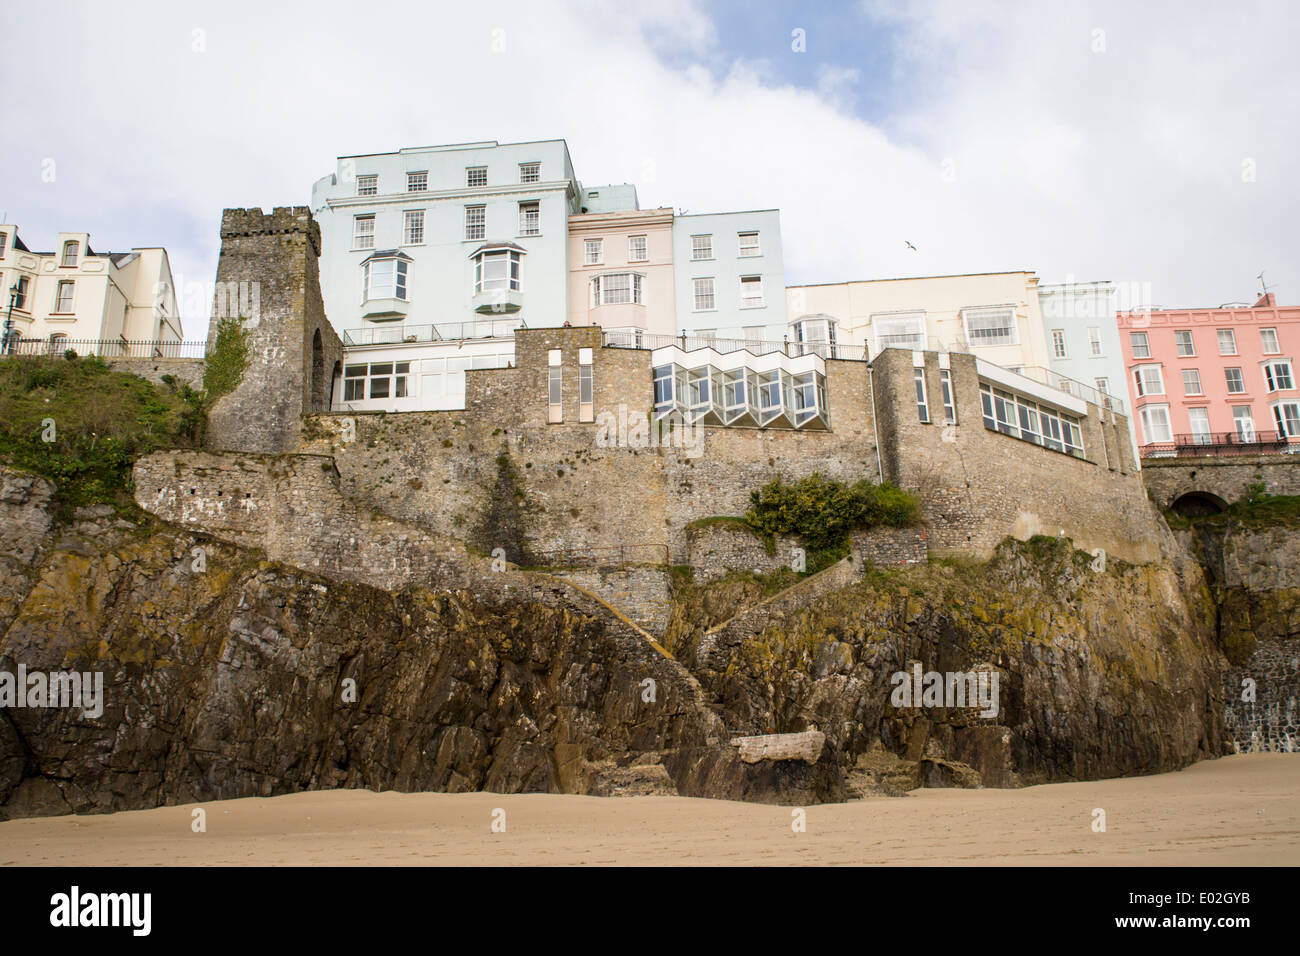 Beach front houses at Tenby, Pembrokeshire, West Wales - Stock Image